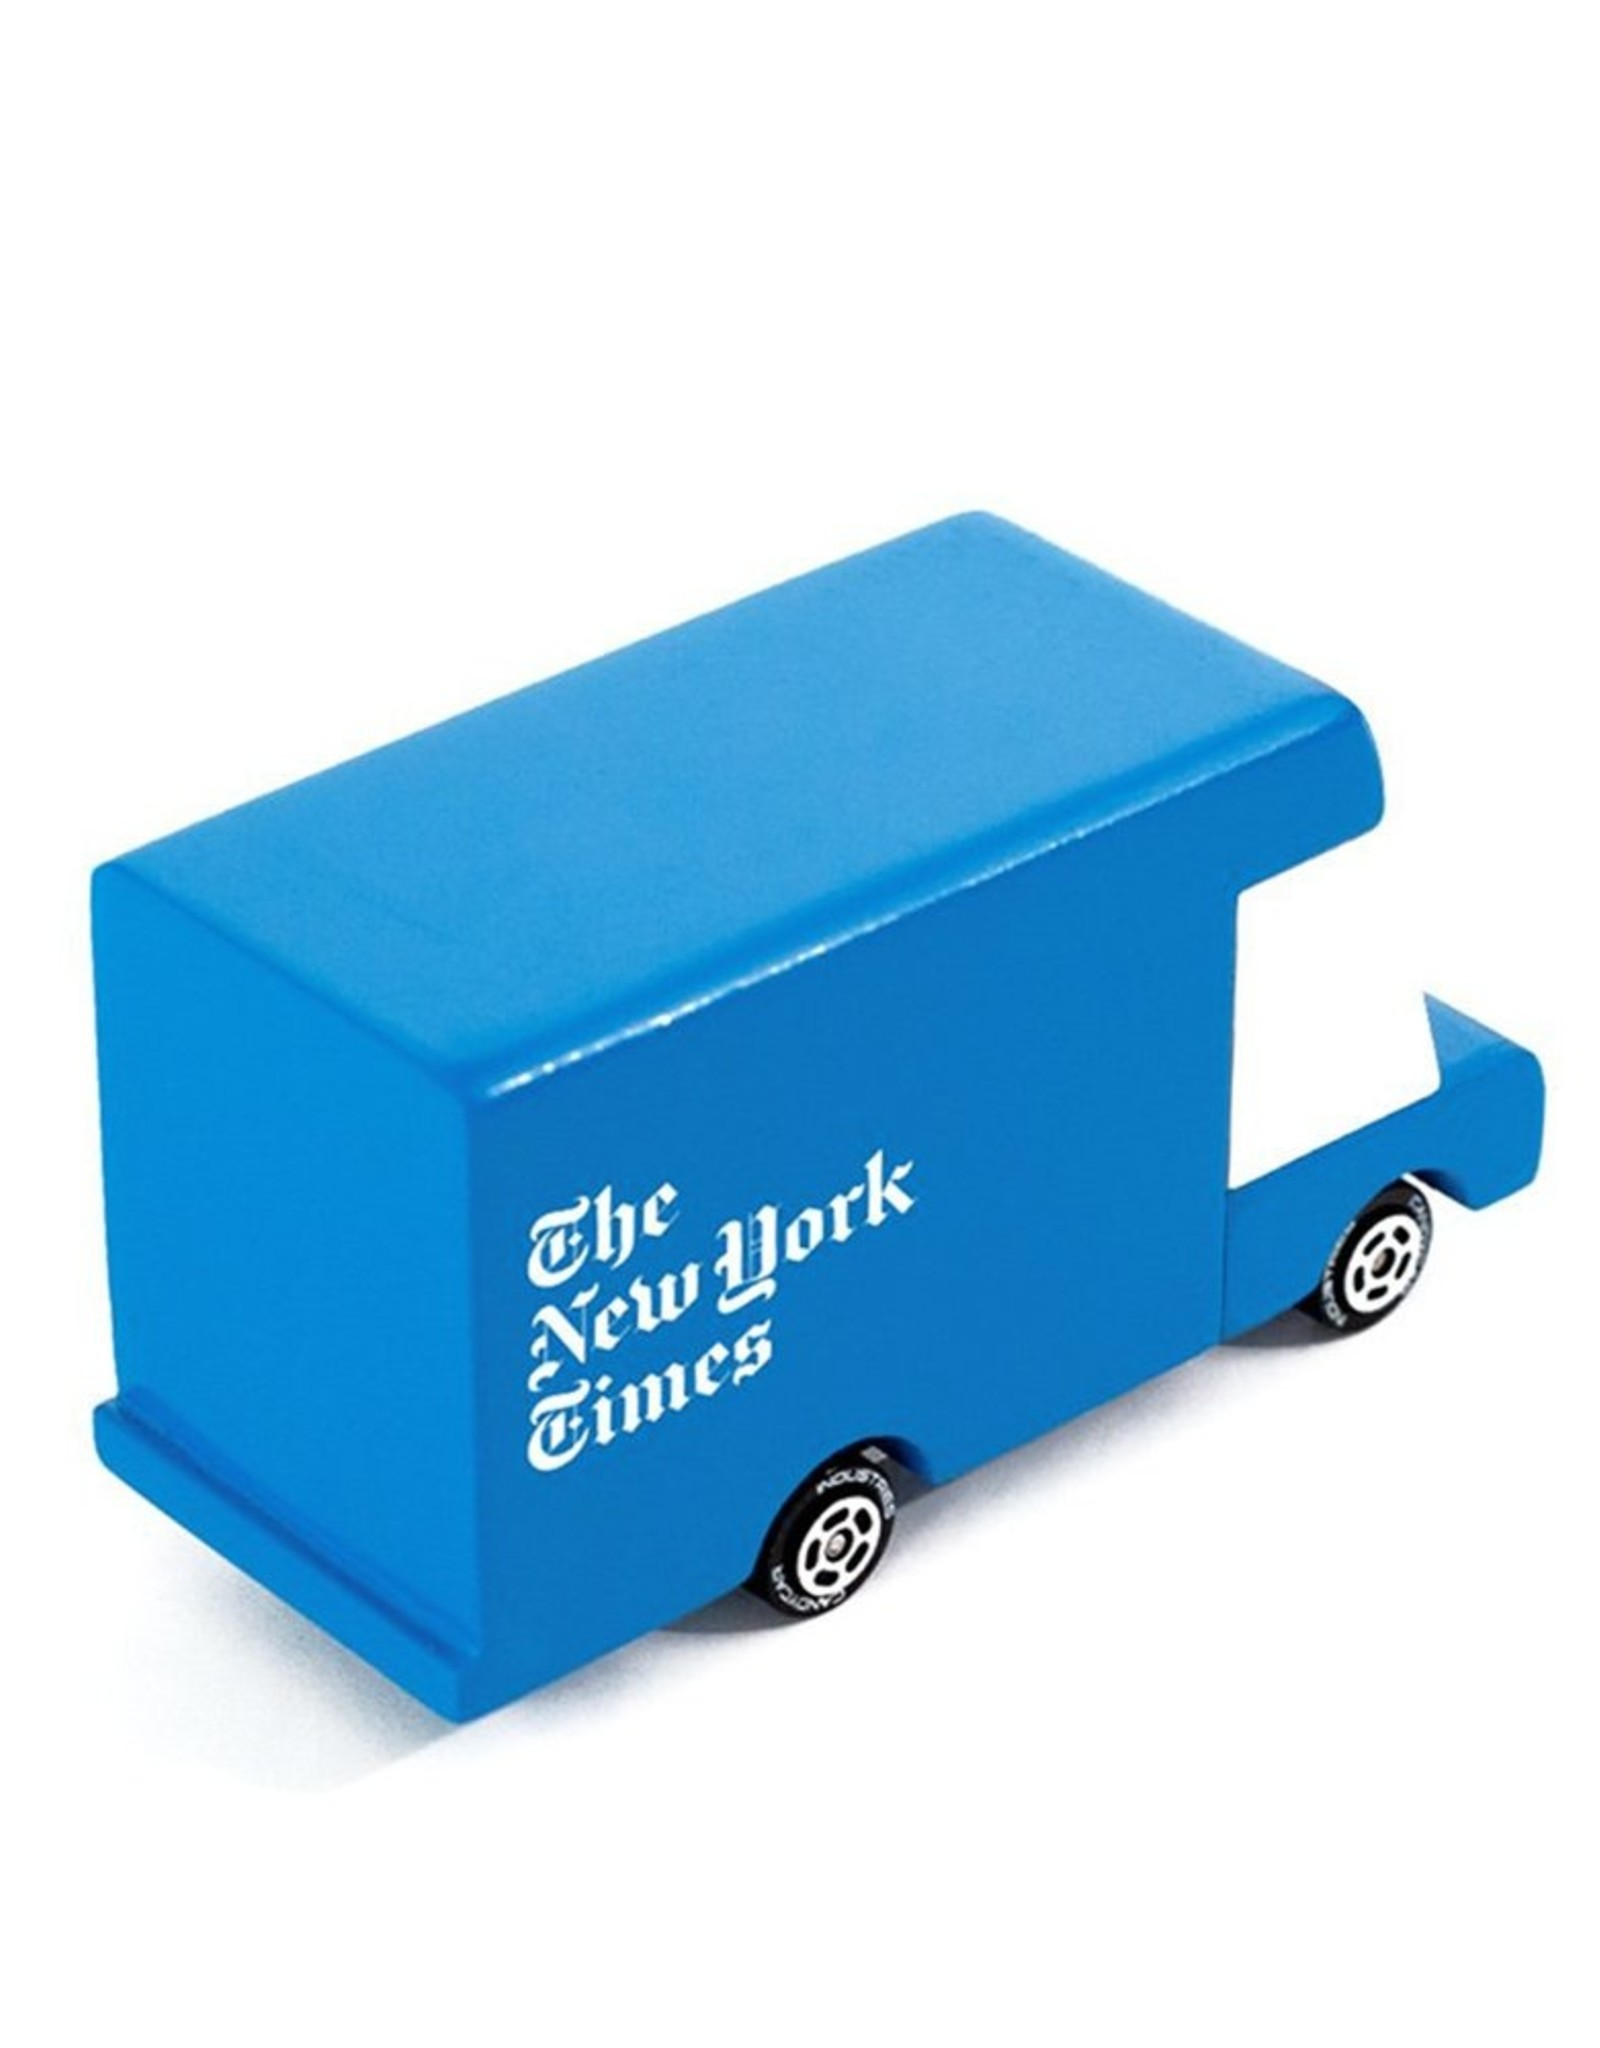 Wooden Toy: New York Times Truck